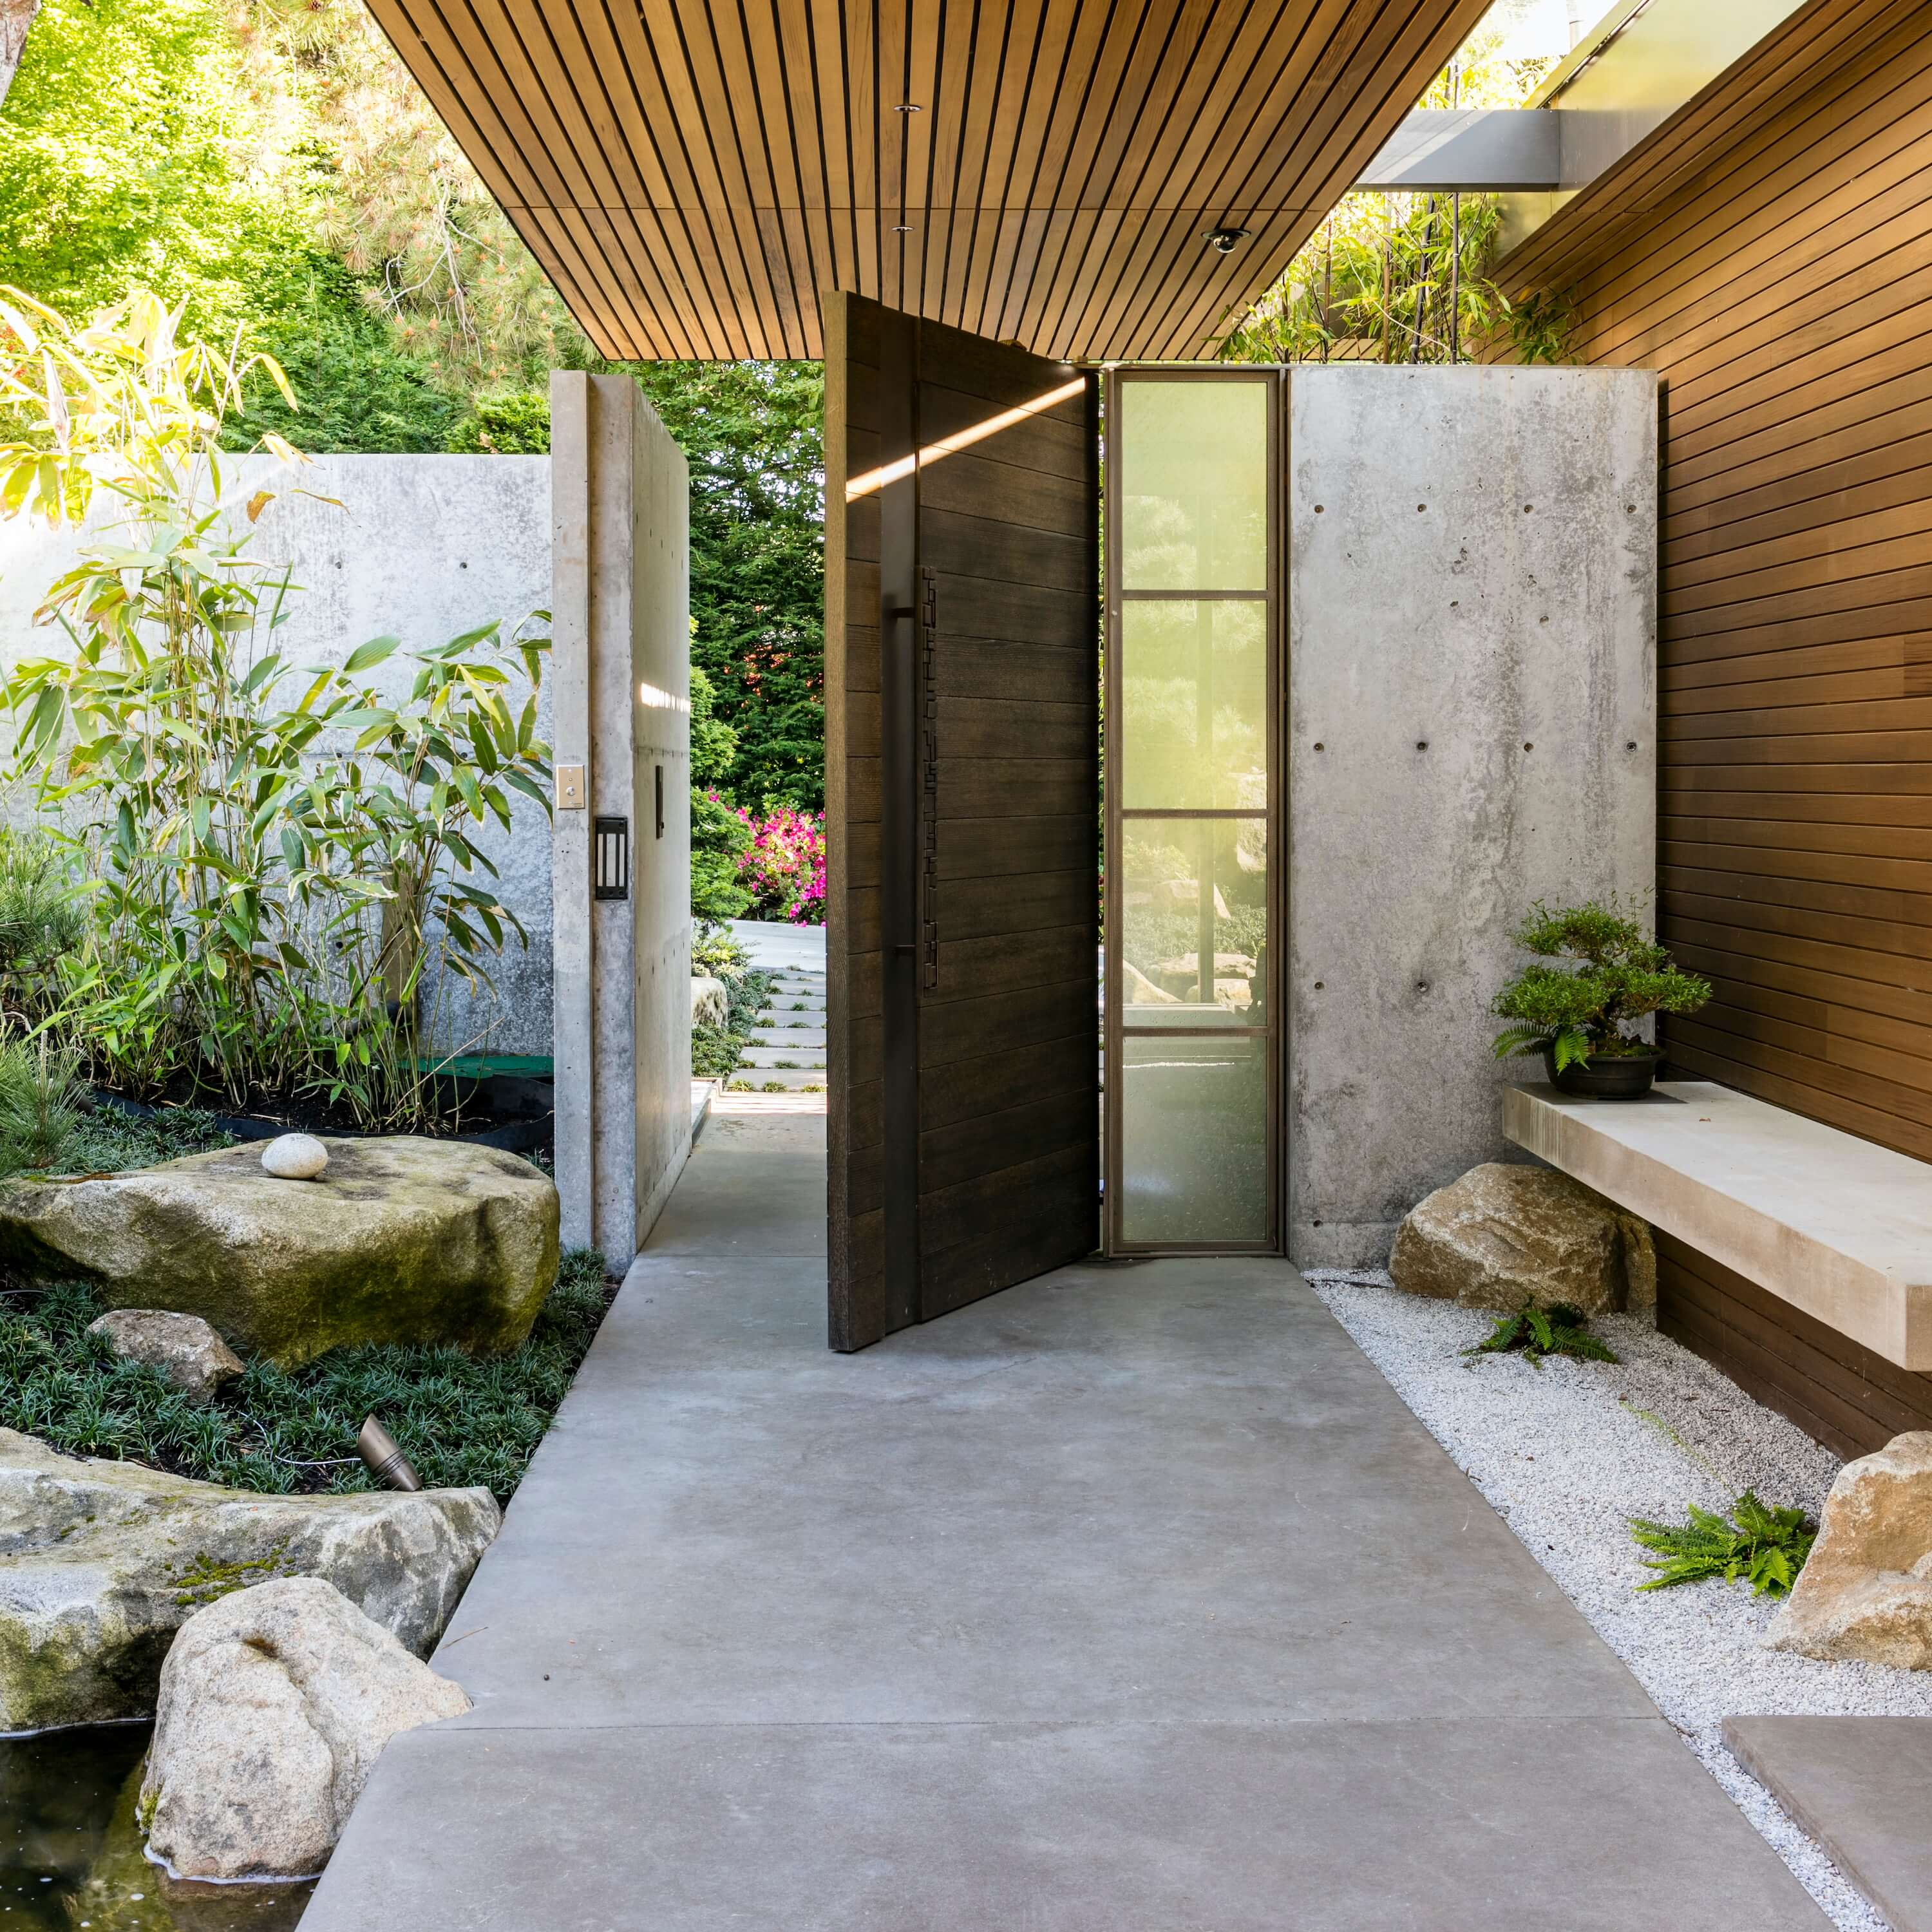 Hidden Cove Residence by Stuart Silk Architects and Land Morphology